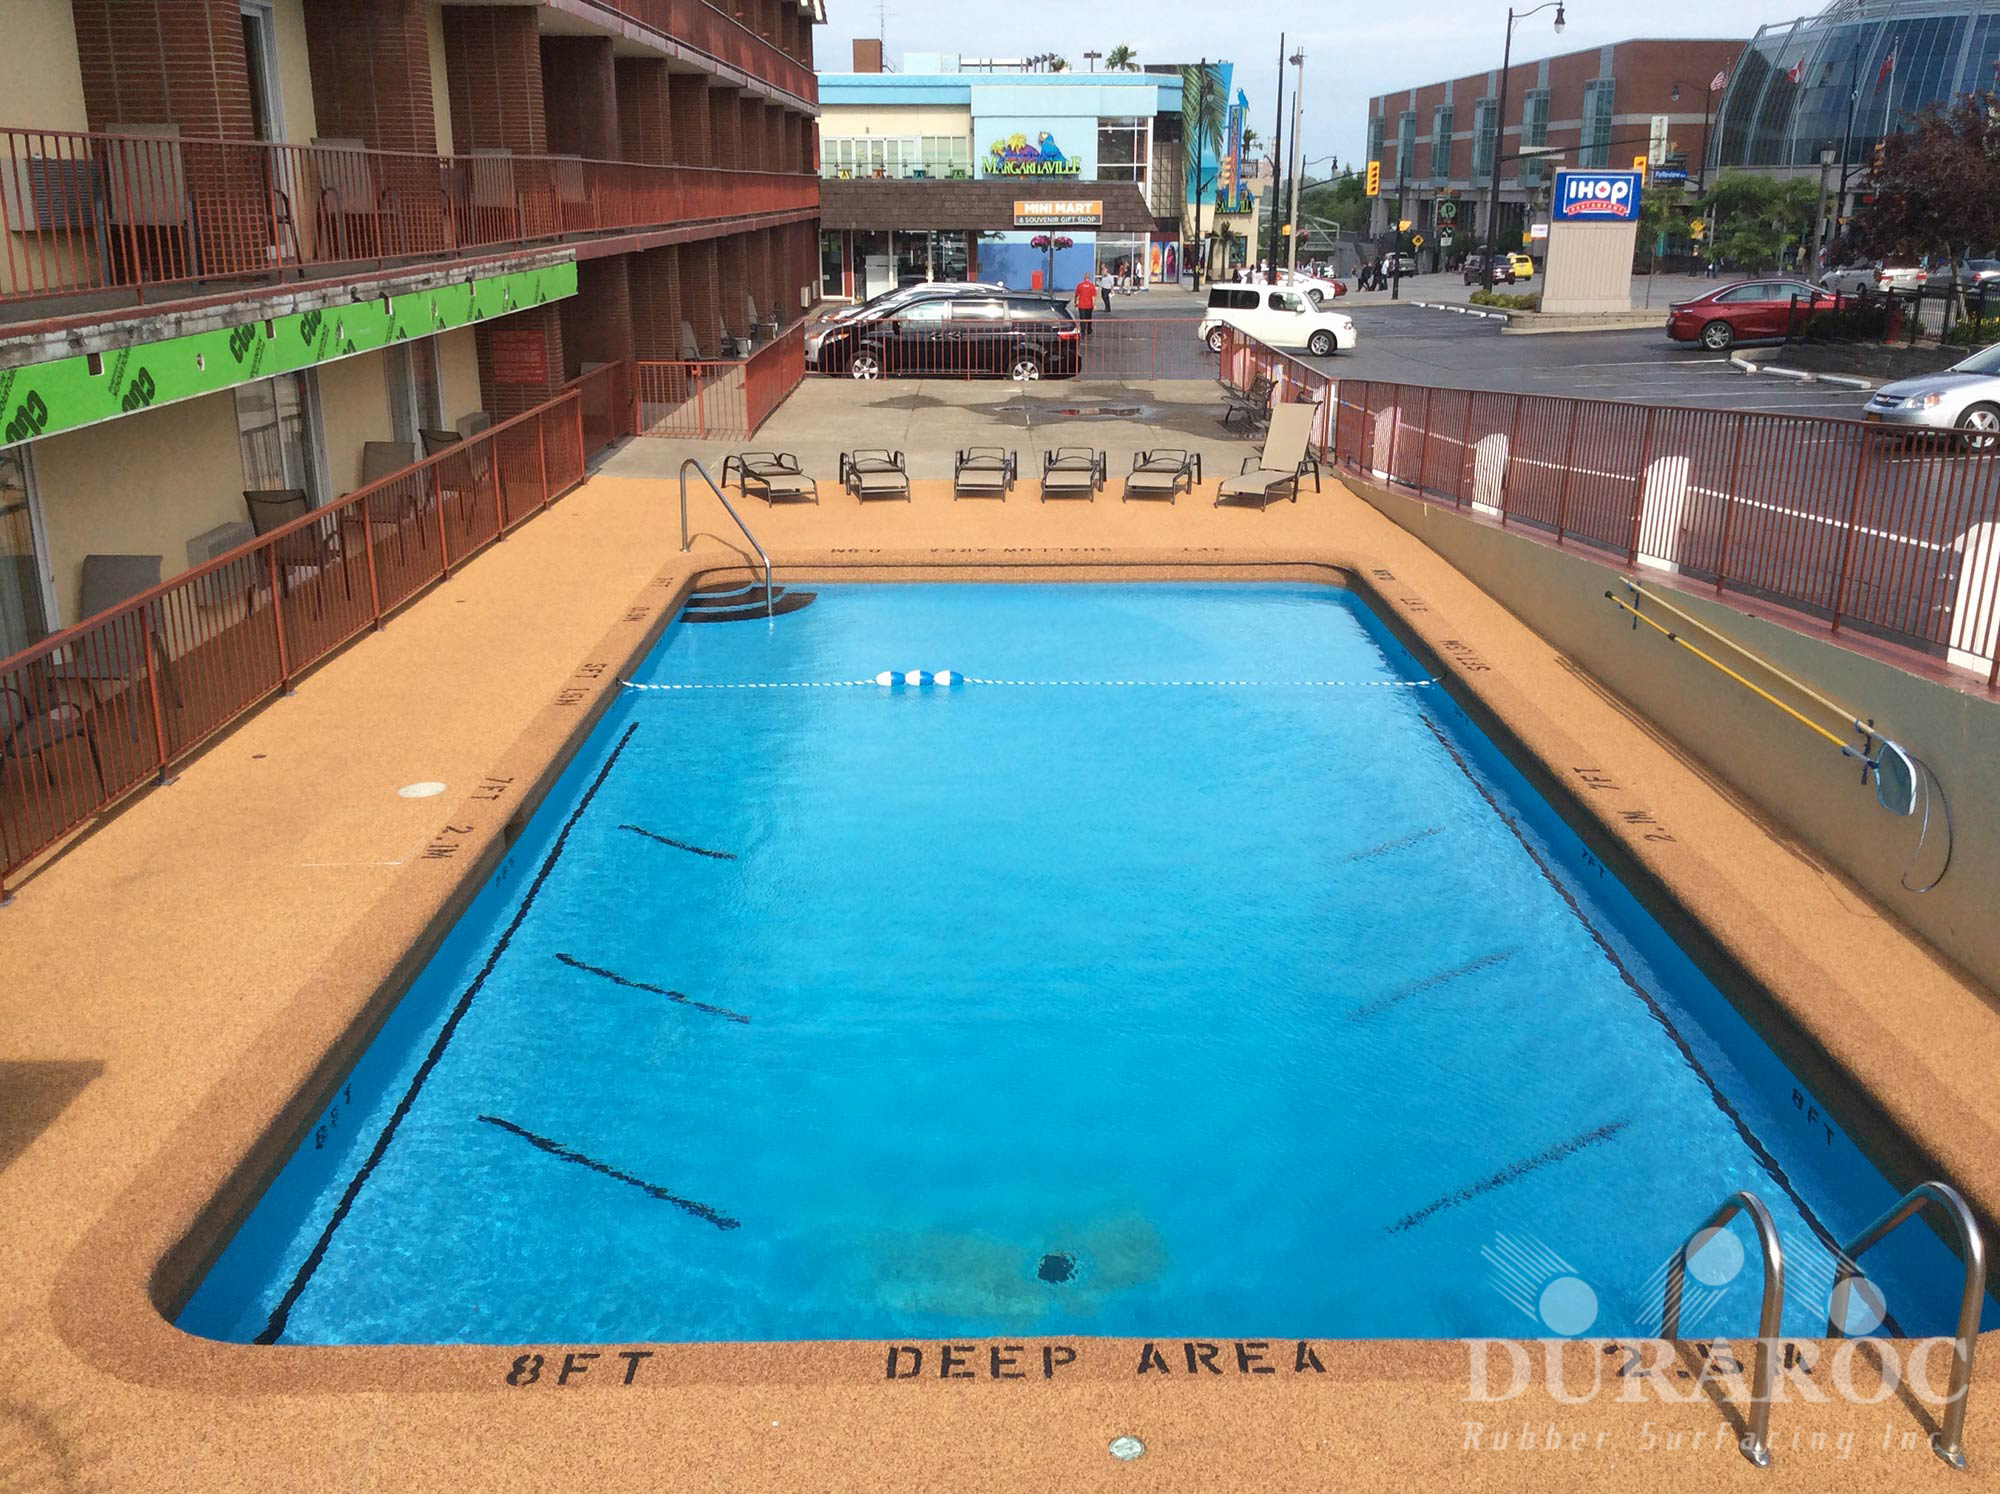 Outdoor pool Duraroc rubber coating